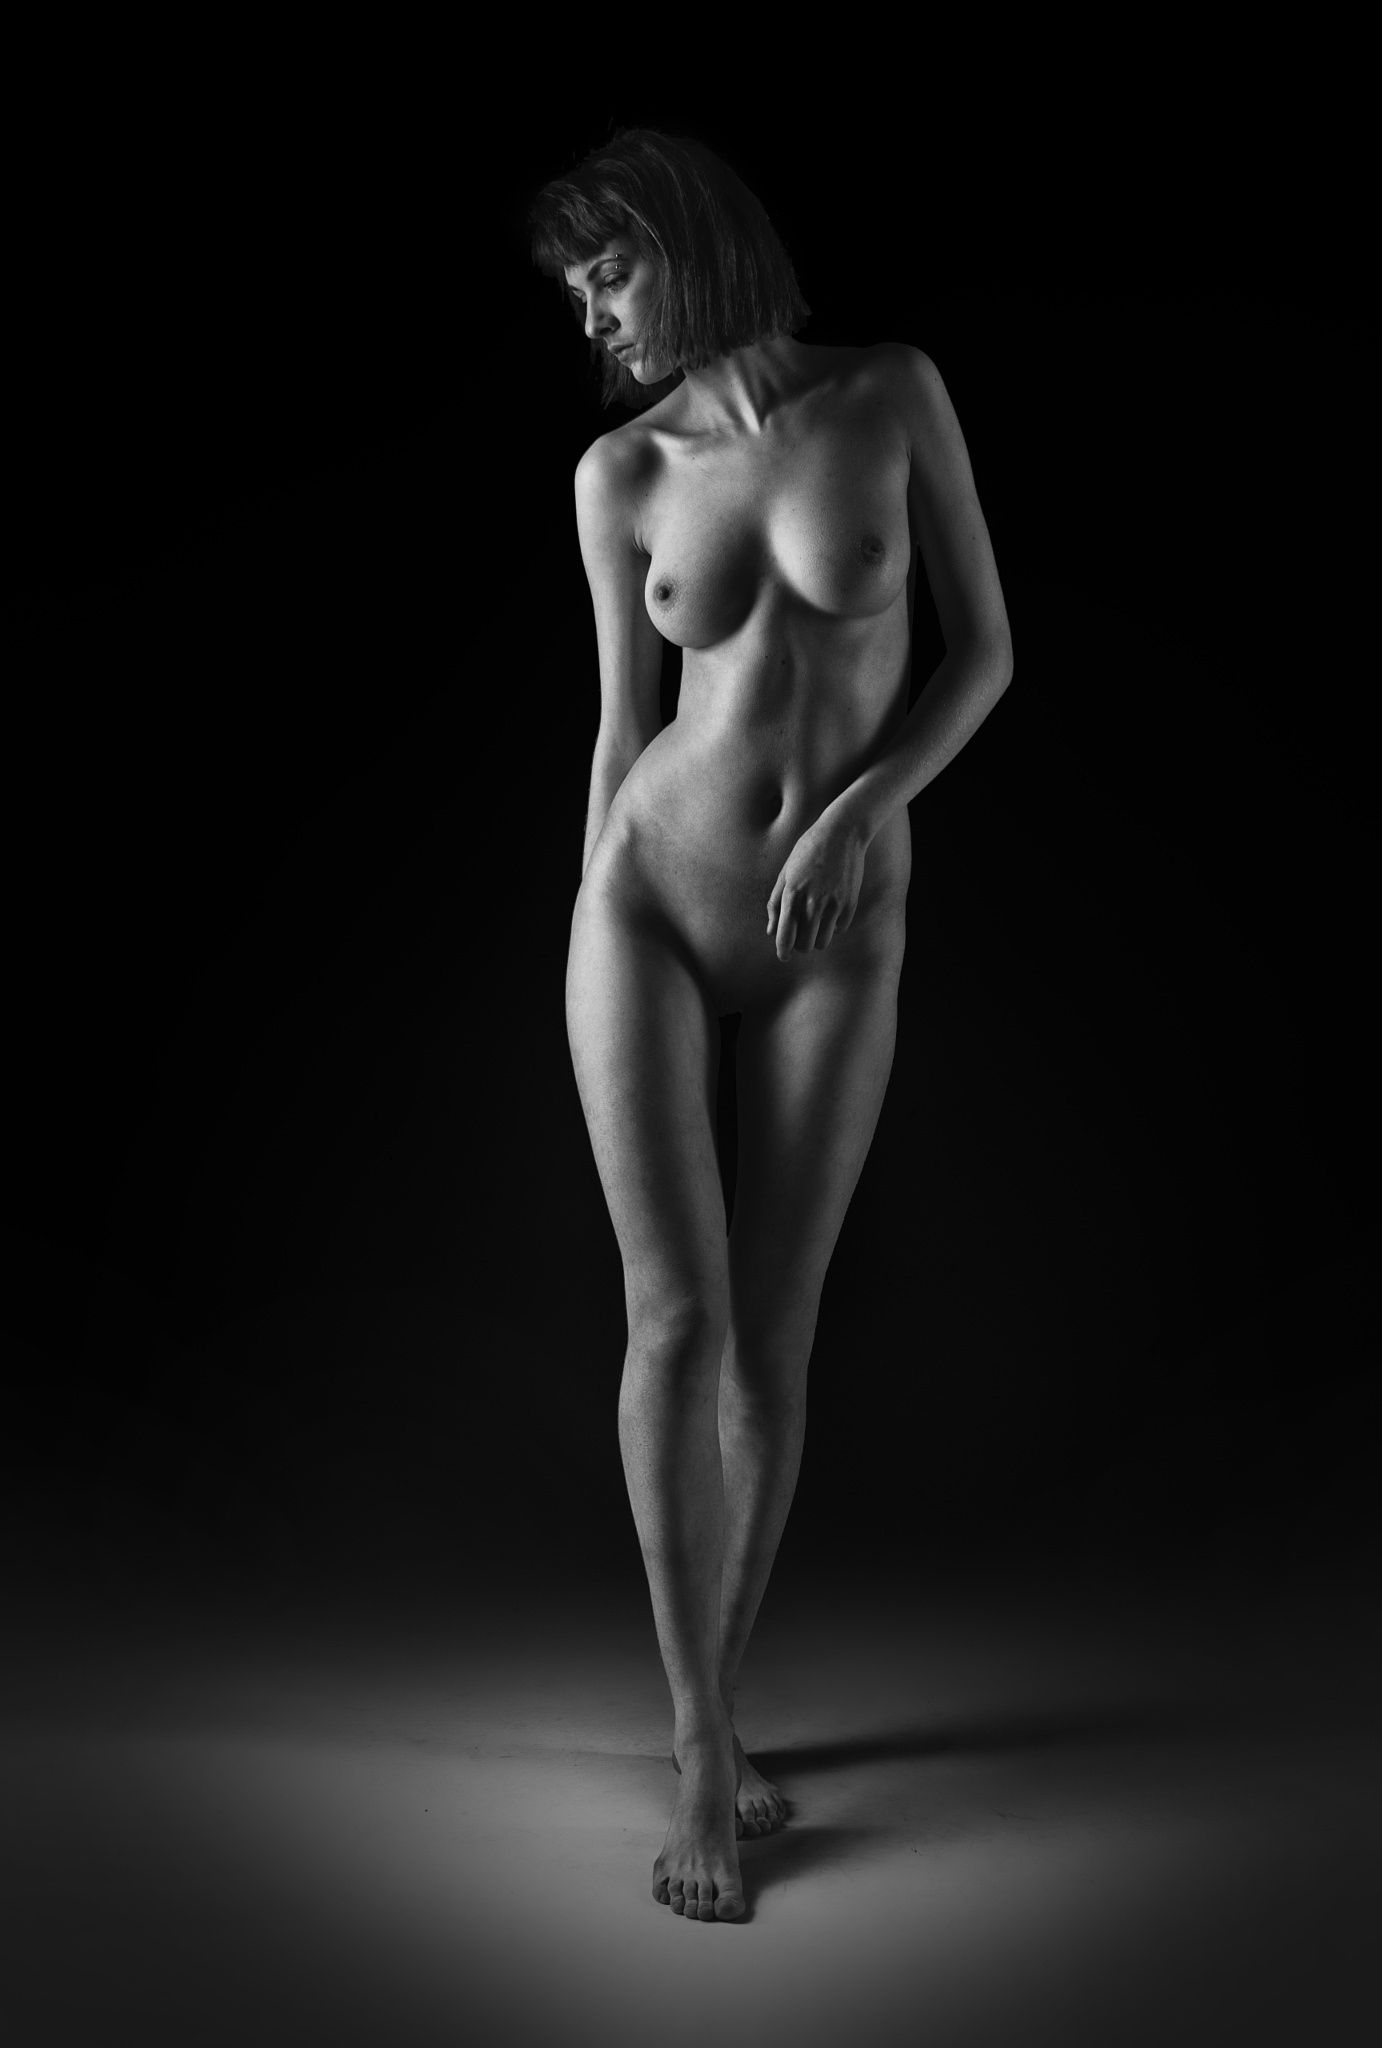 Tattooed Nude Black And White Digital Art By Kaylee Mason